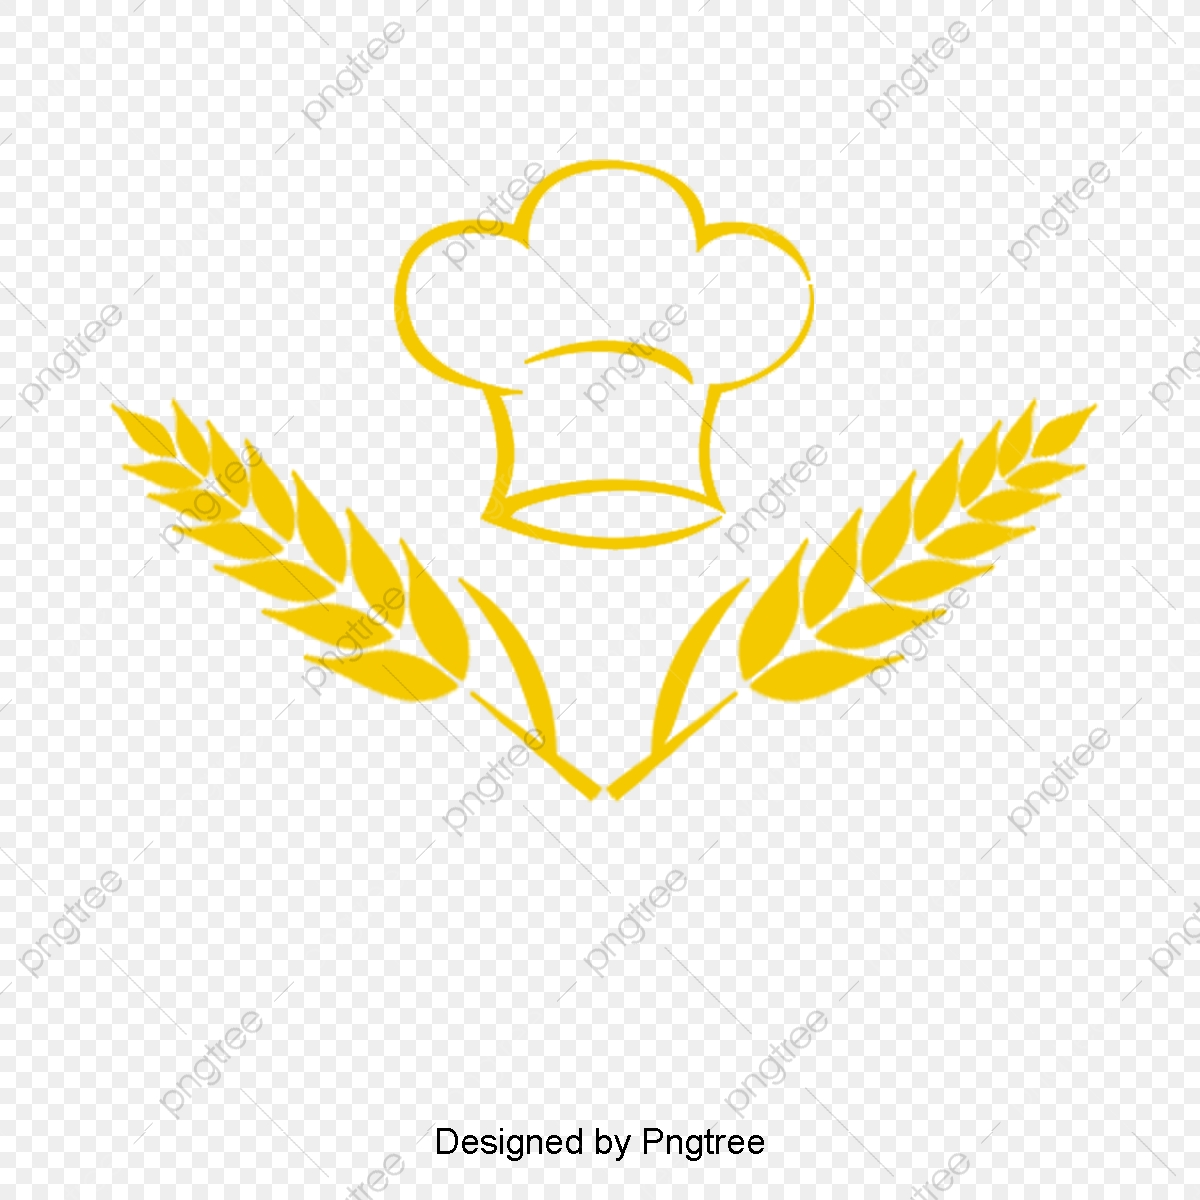 Yellow Wheat Bakery, Vector Png, Bakery, Wheat PNG Transparent.